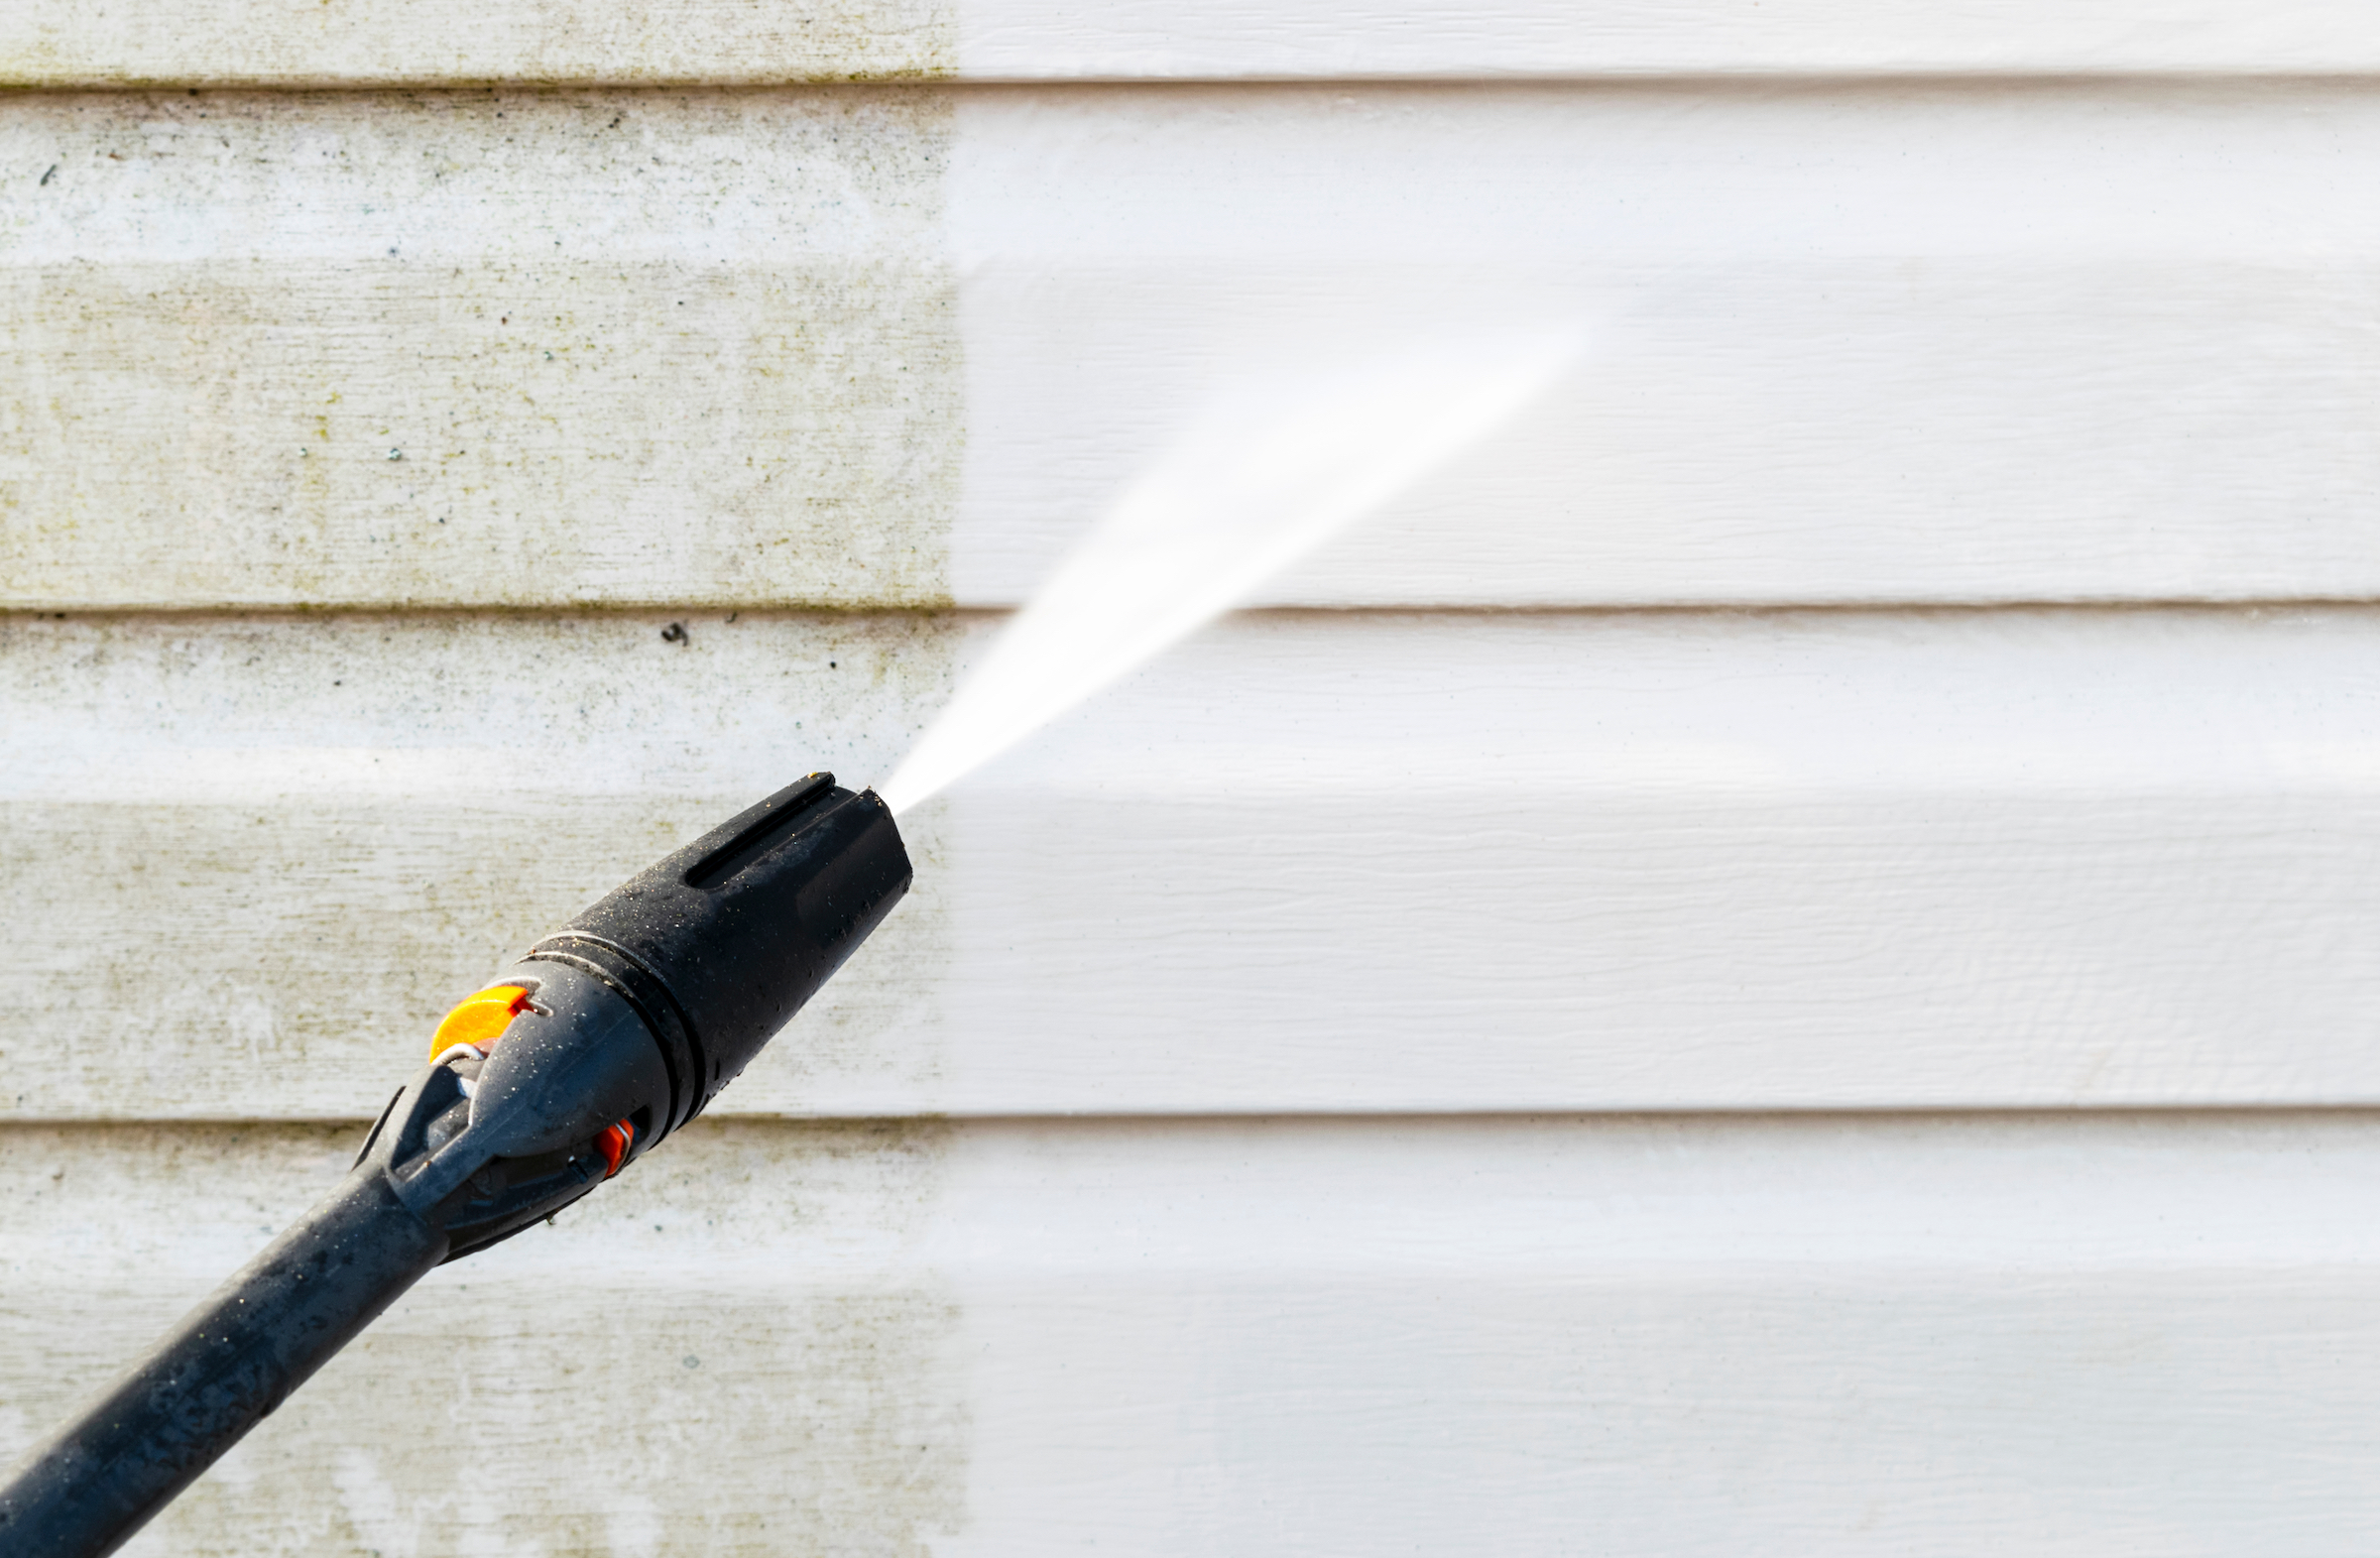 How to pressure wash a house: a guide to pressure washing nozzles.